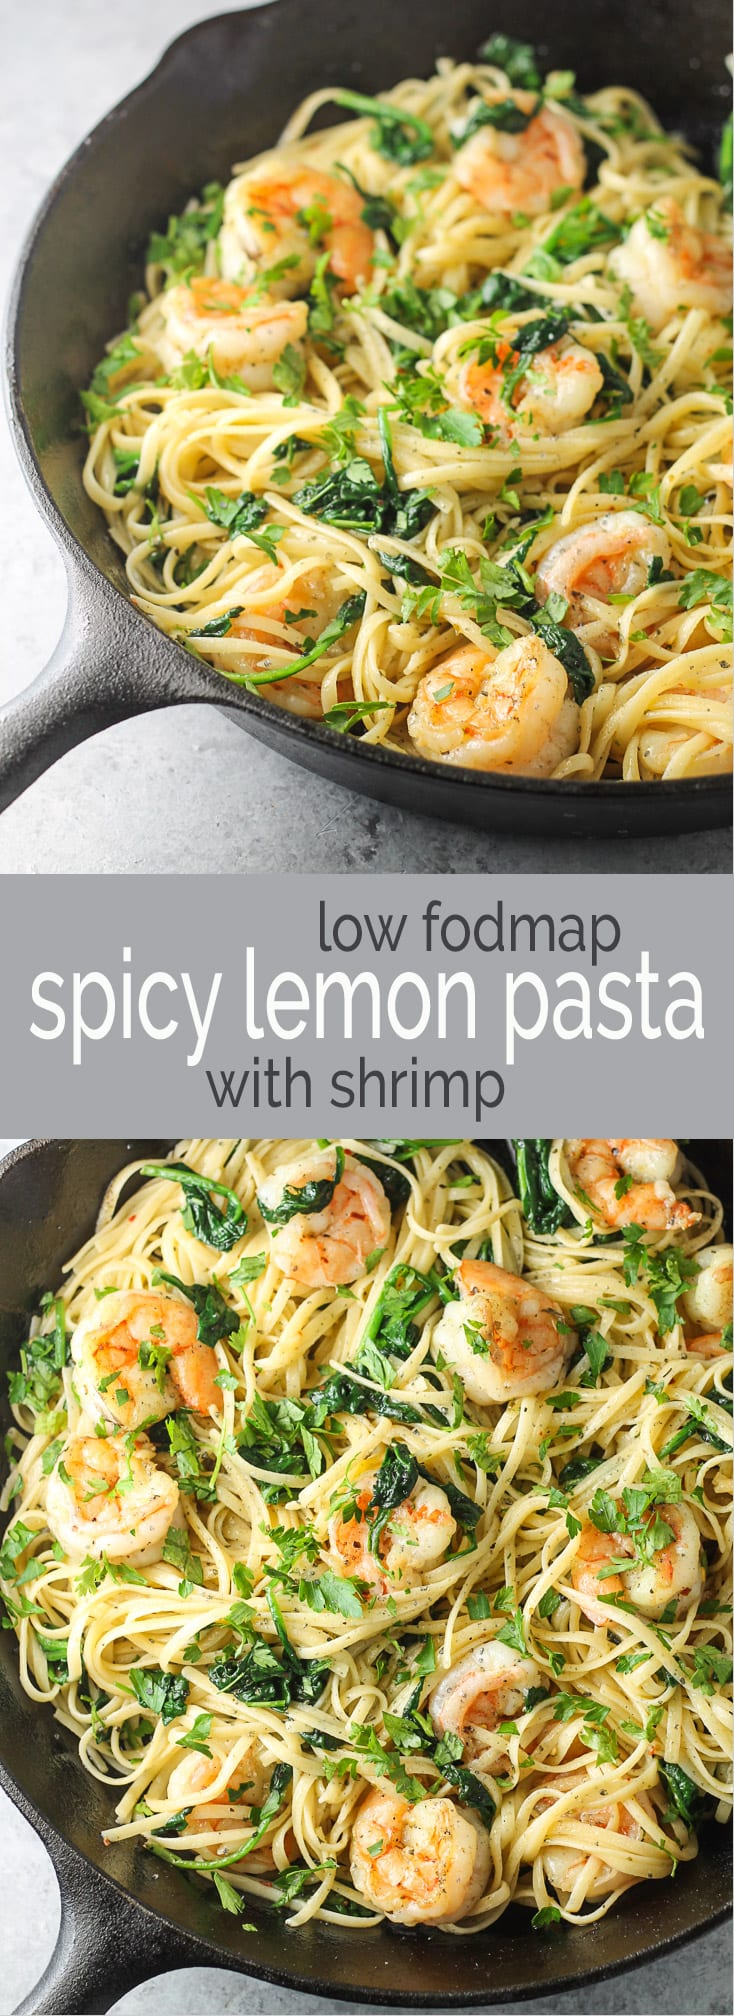 Whether it's for an easy weeknight meal or simple stay-at-home date night supper, this Low Fodmap Spicy Lemon Pasta with Shrimp recipe is AH-mazing! And, it's gluten free!!